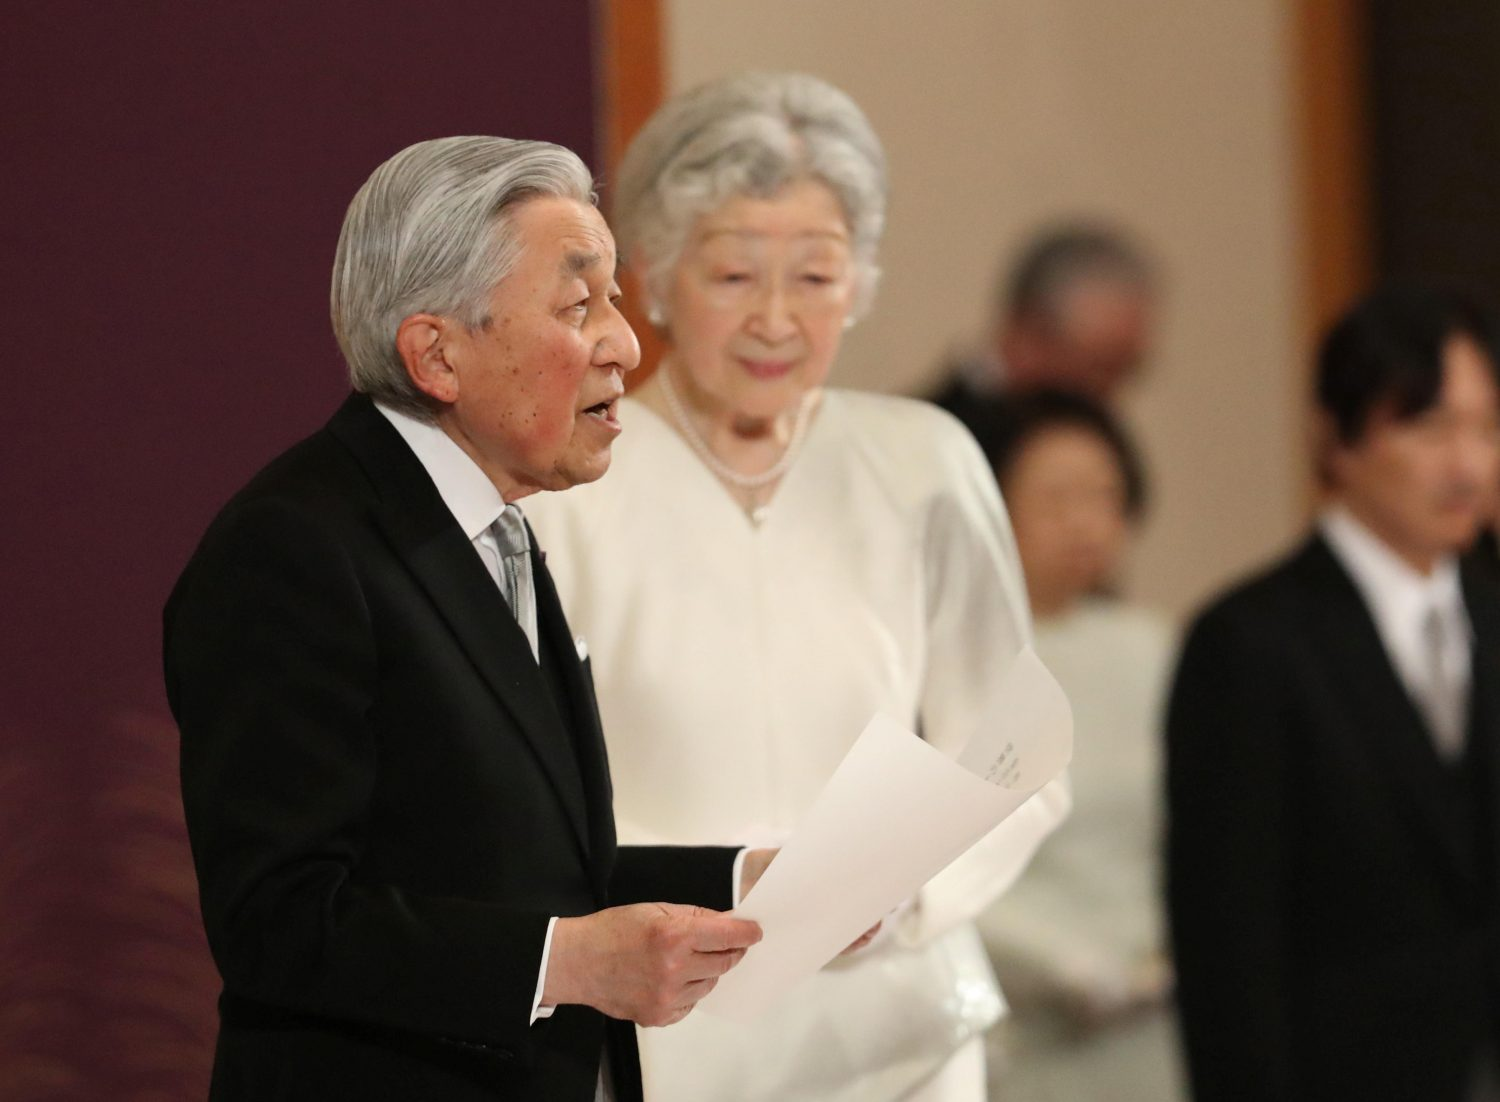 Japan's Emperor Akihito, flanked by Empress Michiko, delivers a speech during a ritual called Taiirei-Seiden-no-gi, a ceremony for the Emperor's abdication, at the Imperial Palace in Tokyo, Japan April 30, 2019. Japan Pool/Pool via REUTERS JAPAN OUT. NO RESALES. NO ARCHIVES.